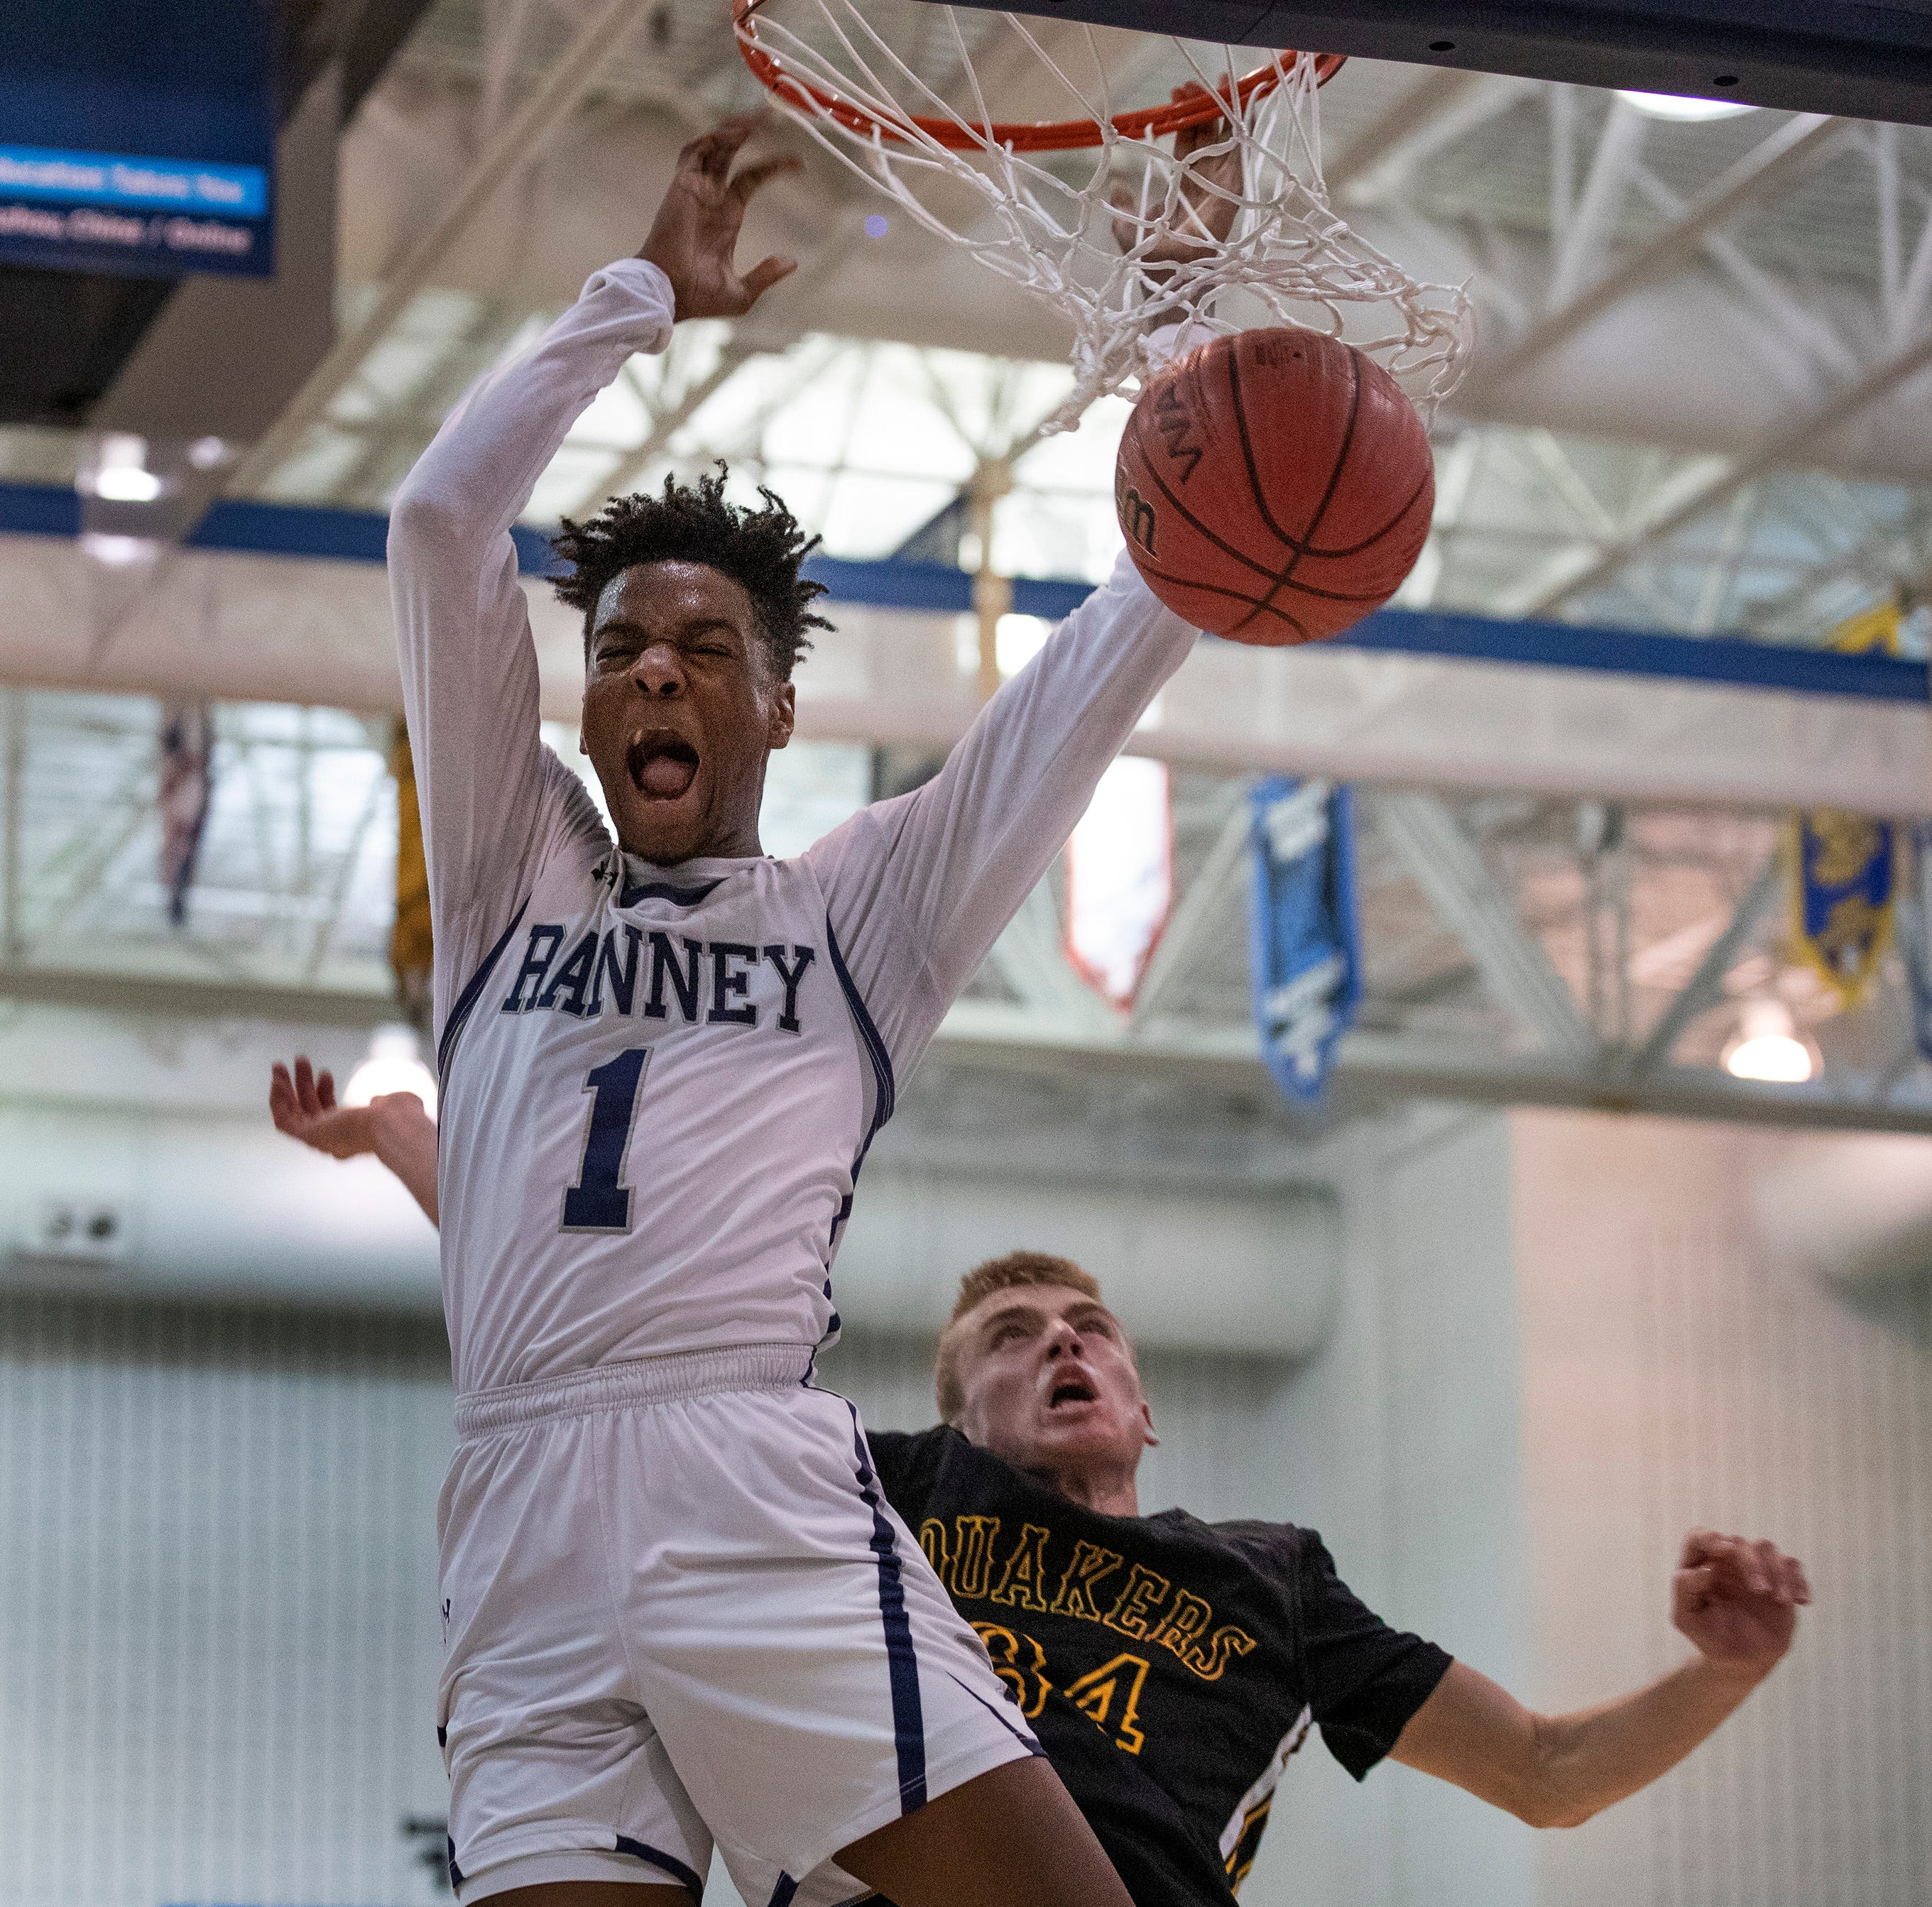 Ranney advances to Tournament of Champions final, Bergen Catholic rematch on deck